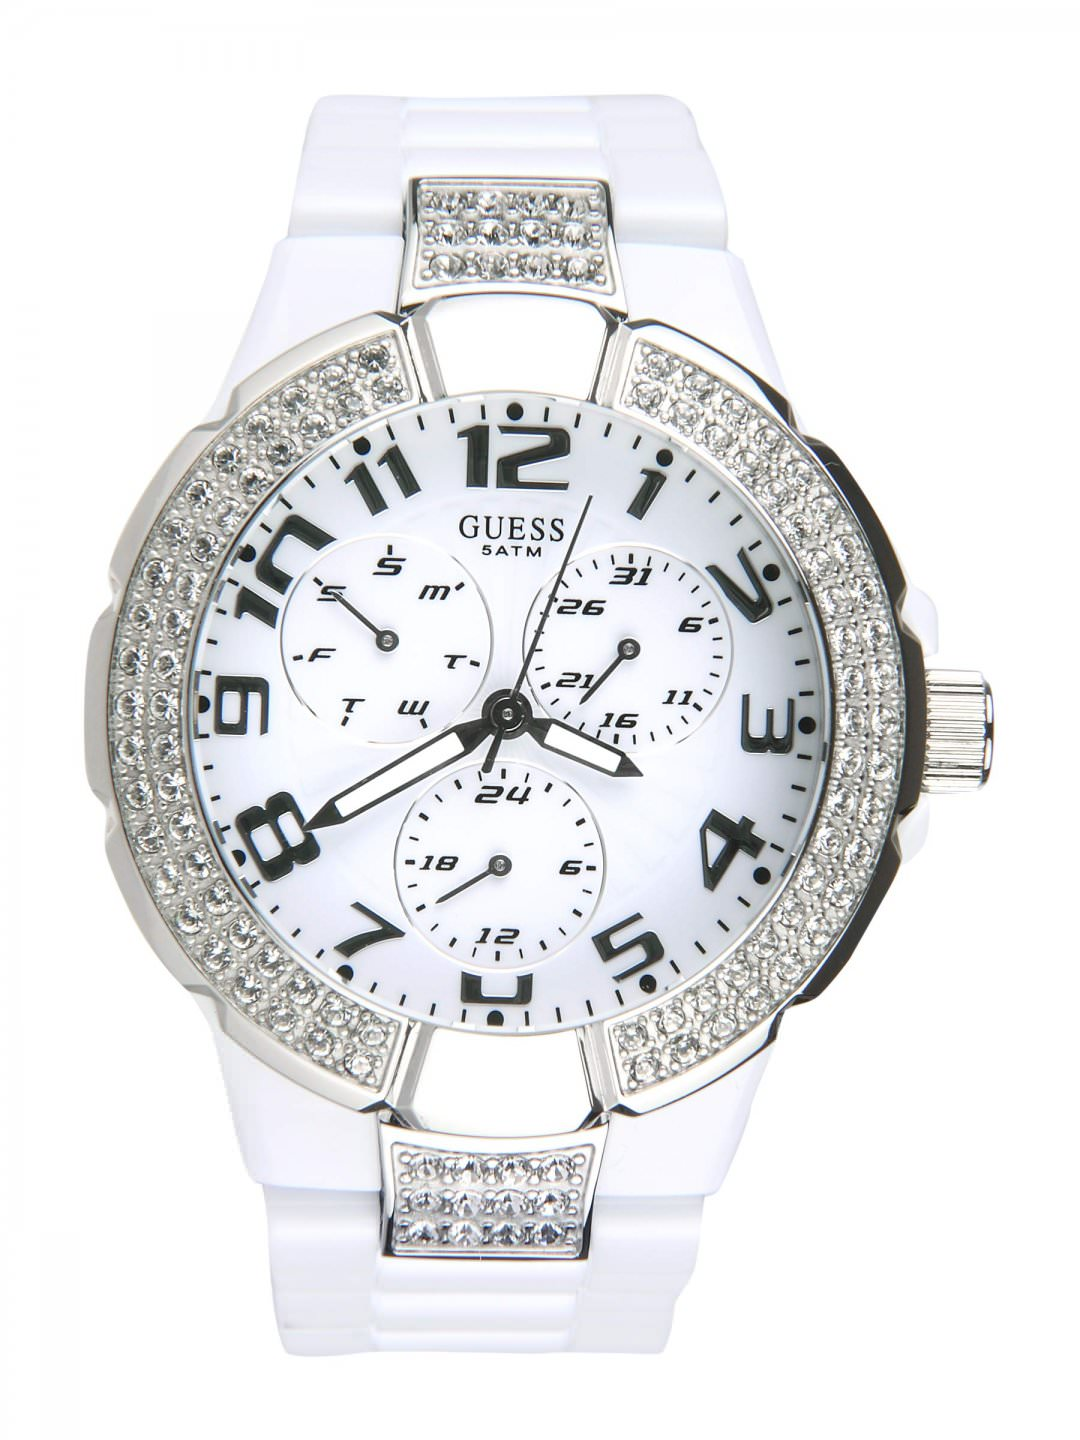 Beautiful elegant guess watches best women watches 2013 wide love presentation for Watches for women